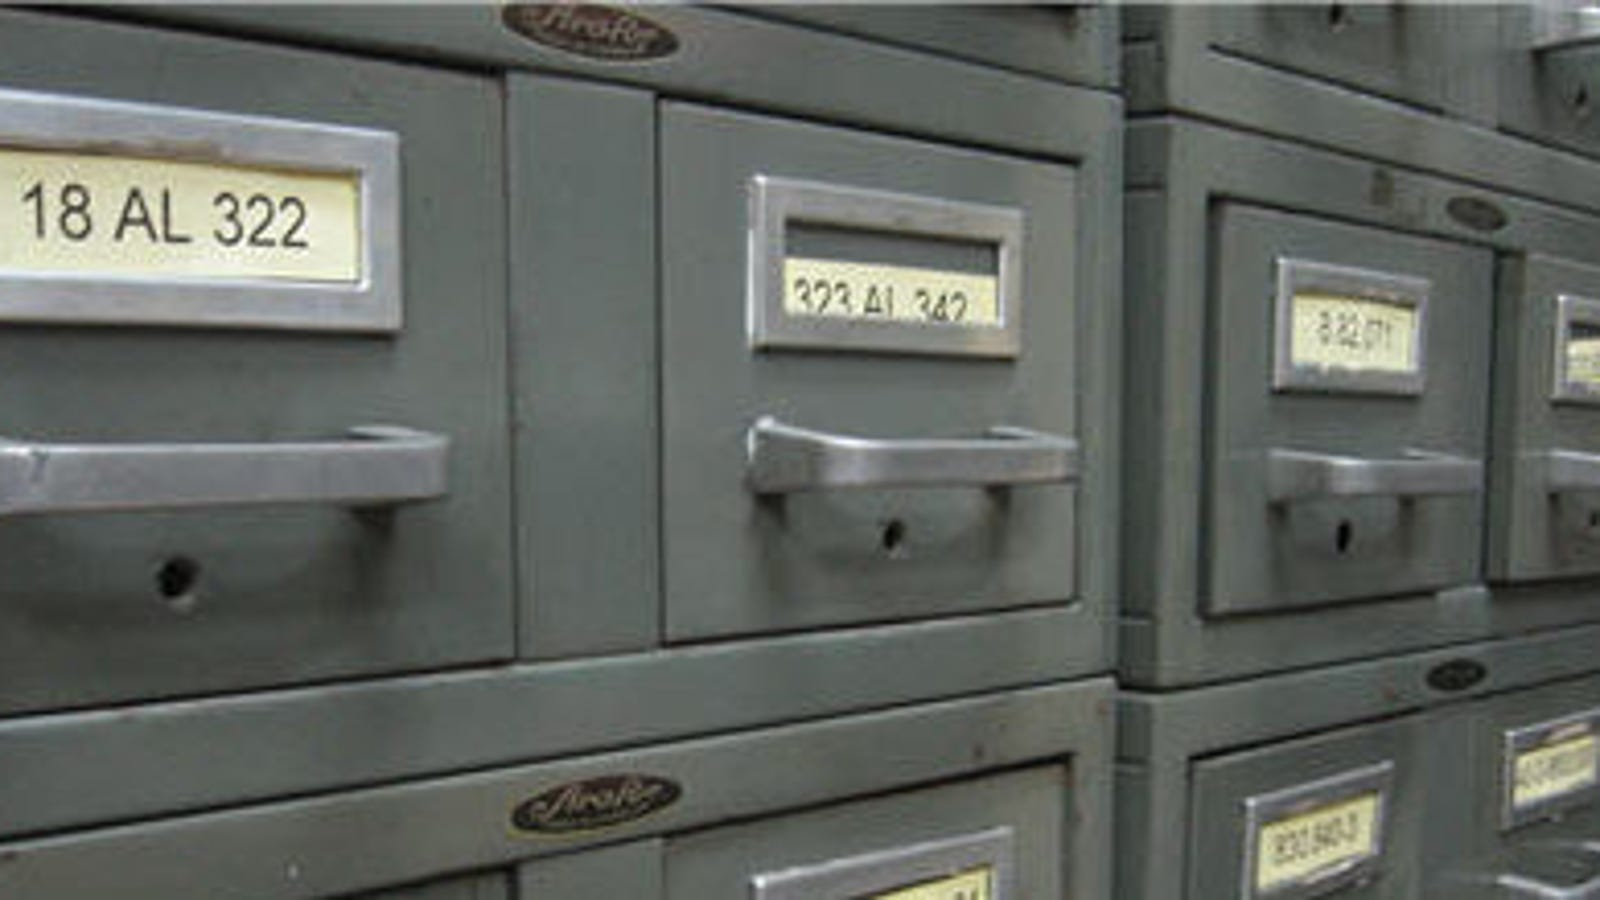 Where To Find Public Records Online